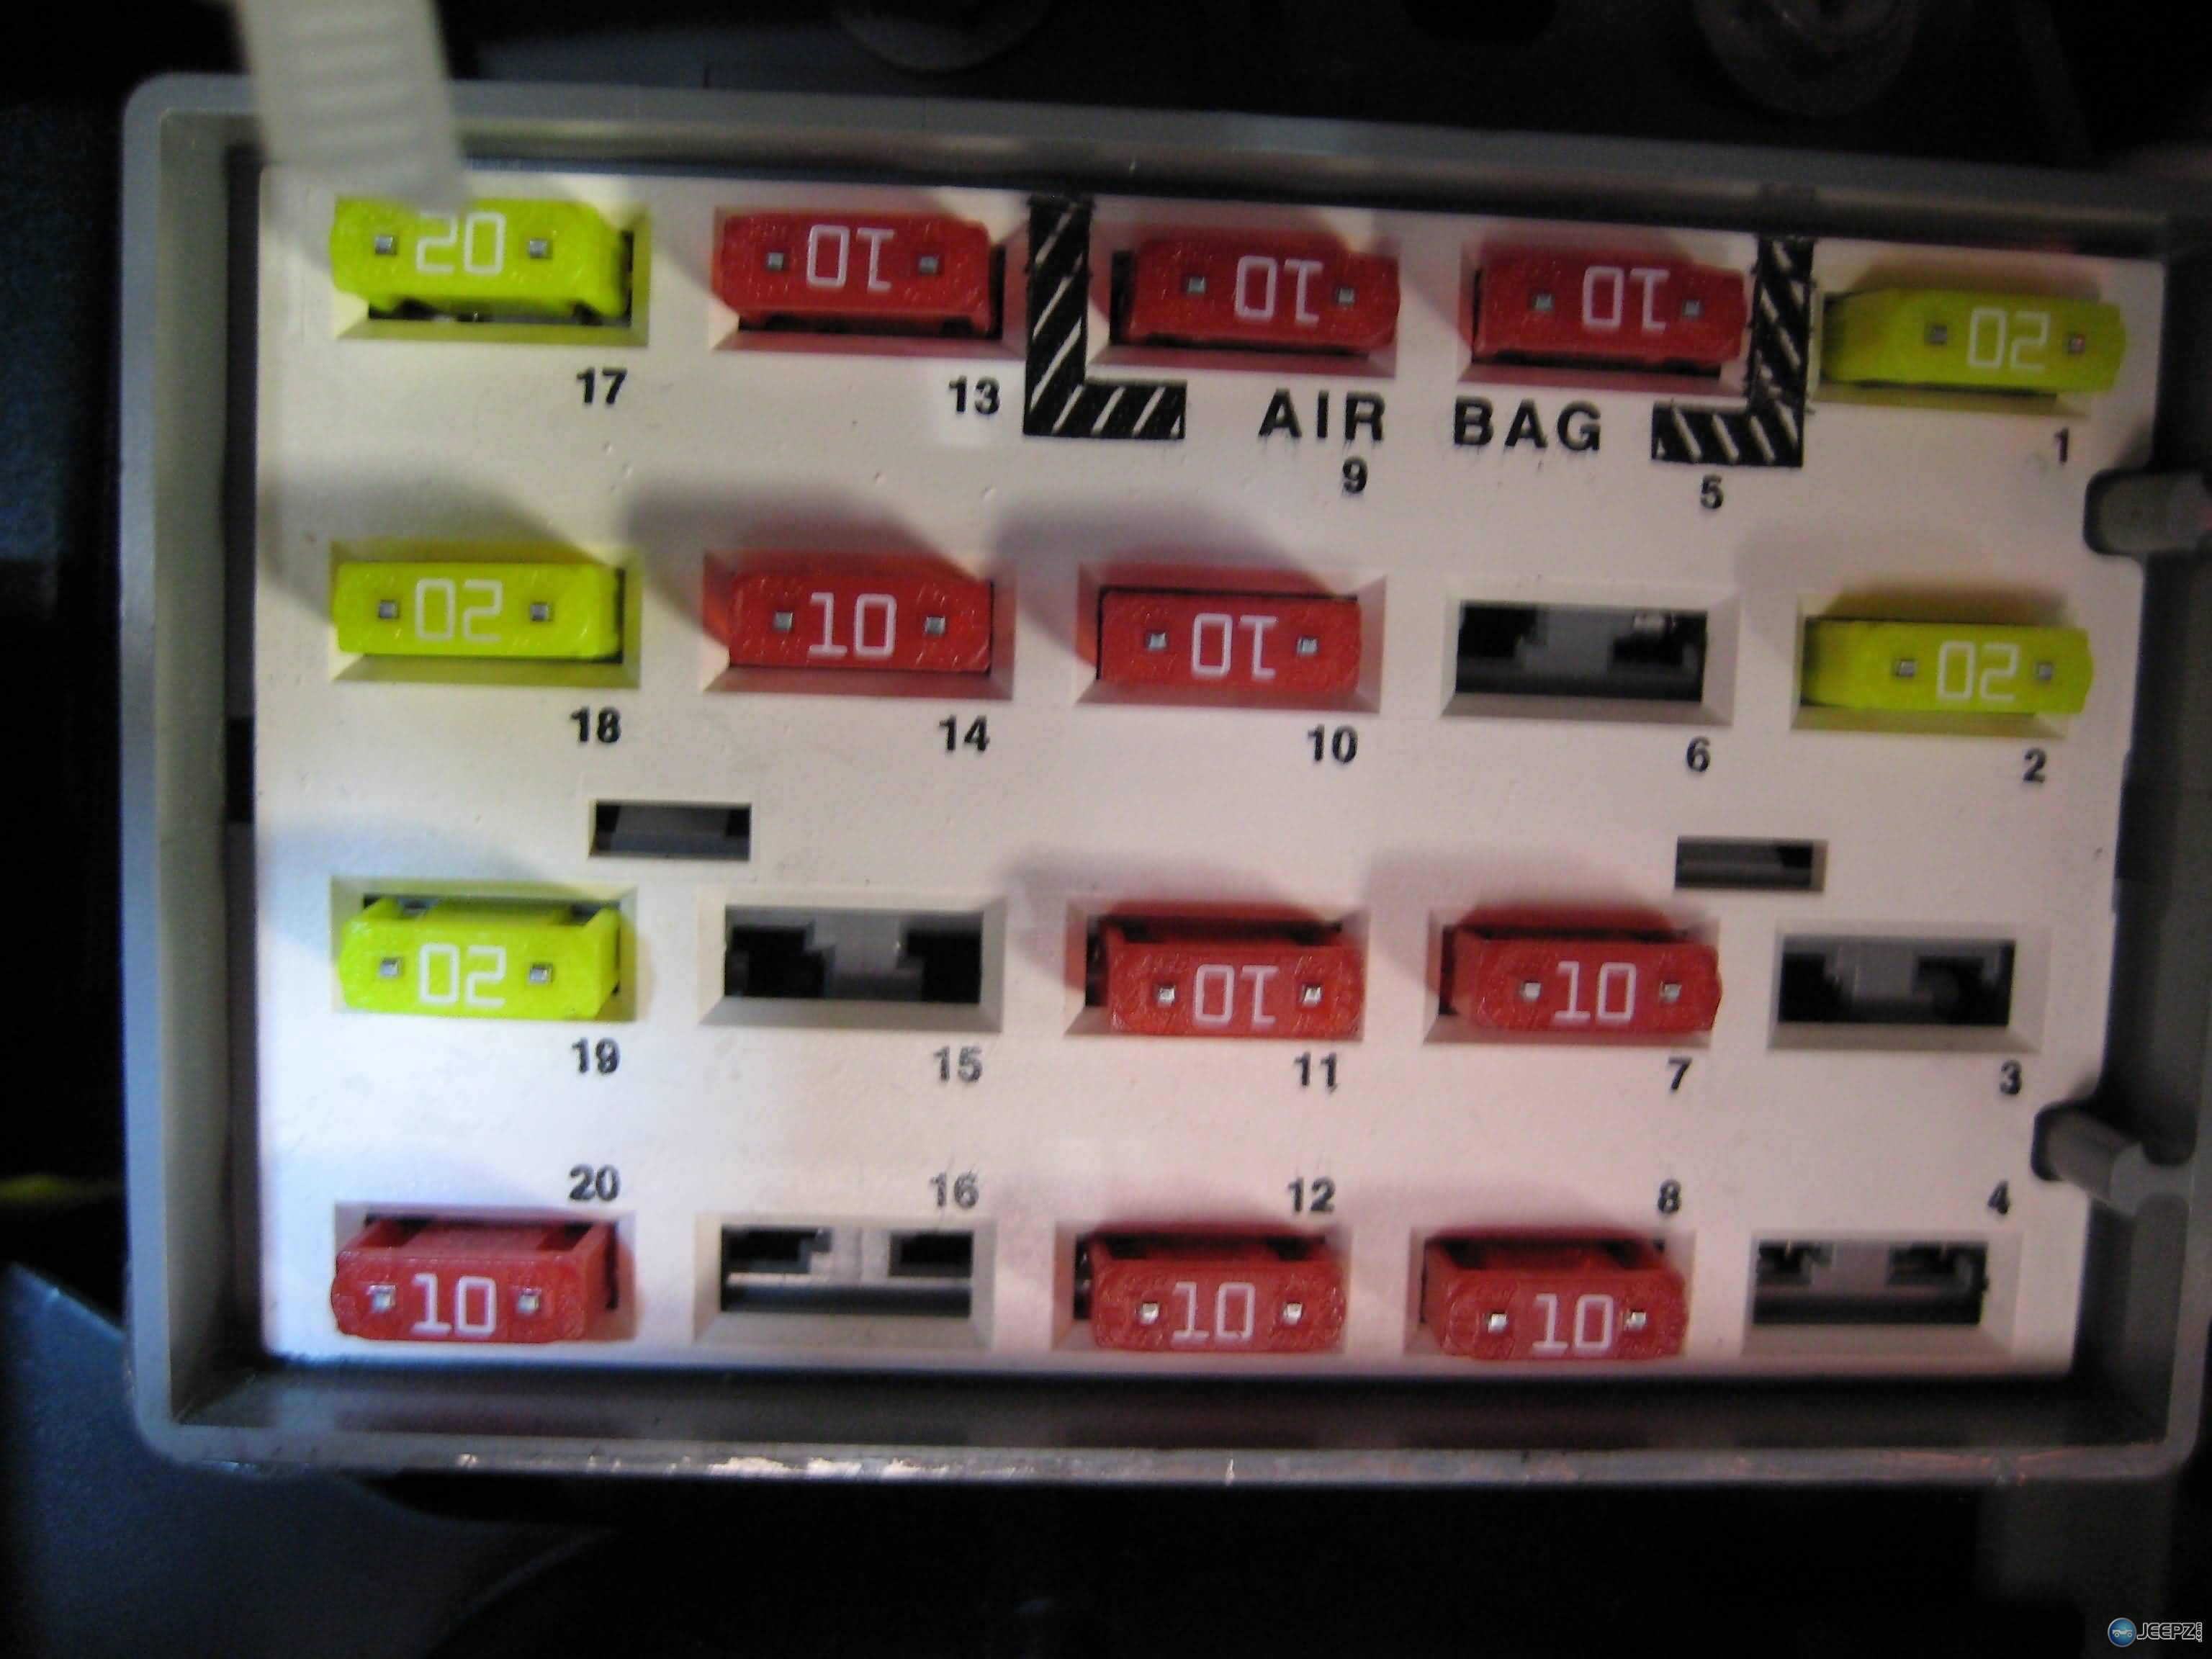 1149d1206929075 wrangler dome light switch fuse_wrangler_dome_light cigarette lighter plug fuse? jeep wrangler forum jeep wrangler tj fuse box diagram at gsmx.co